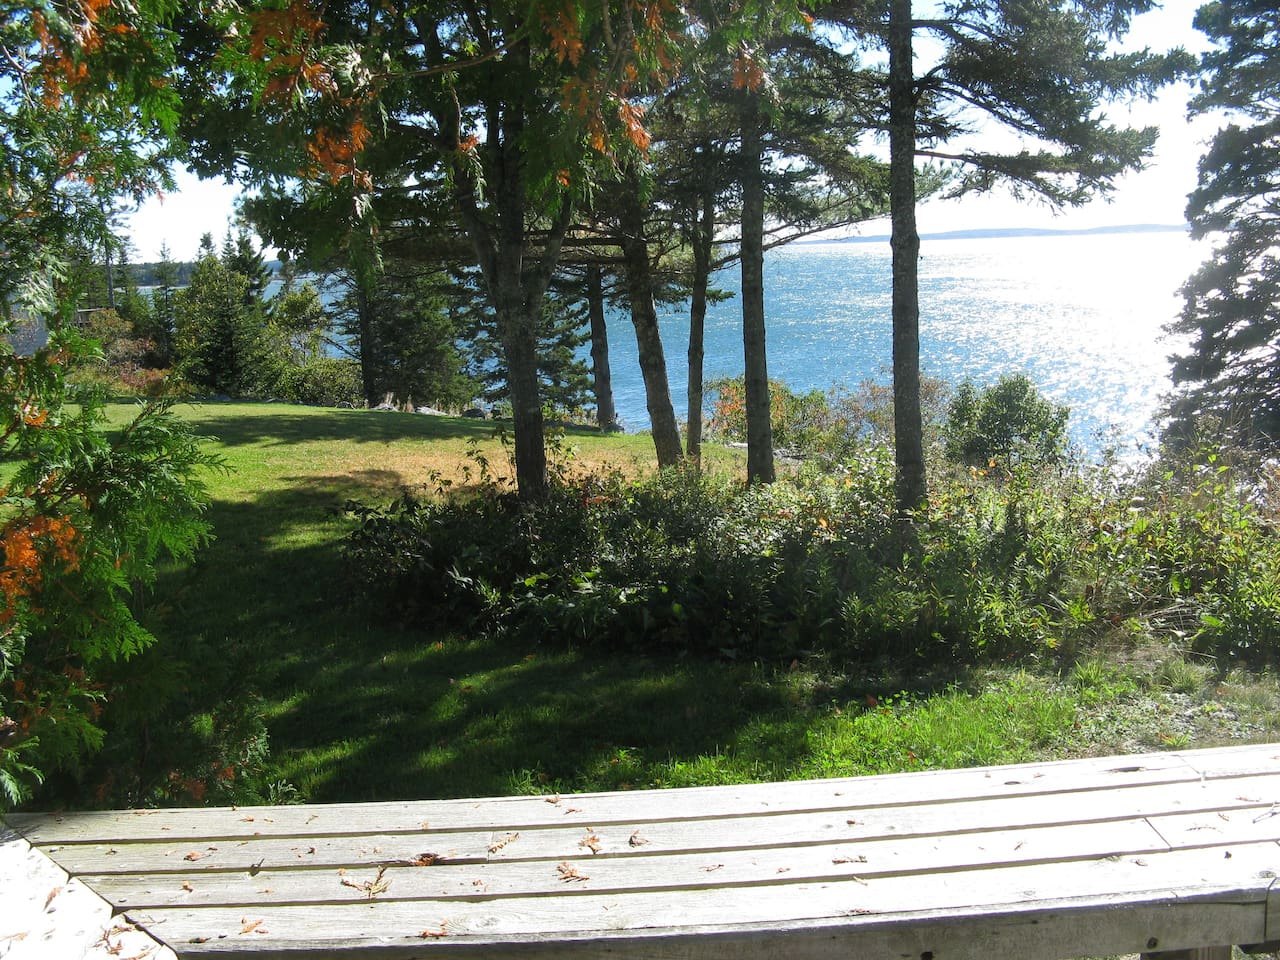 View from Deck at Cedarledge Cottage